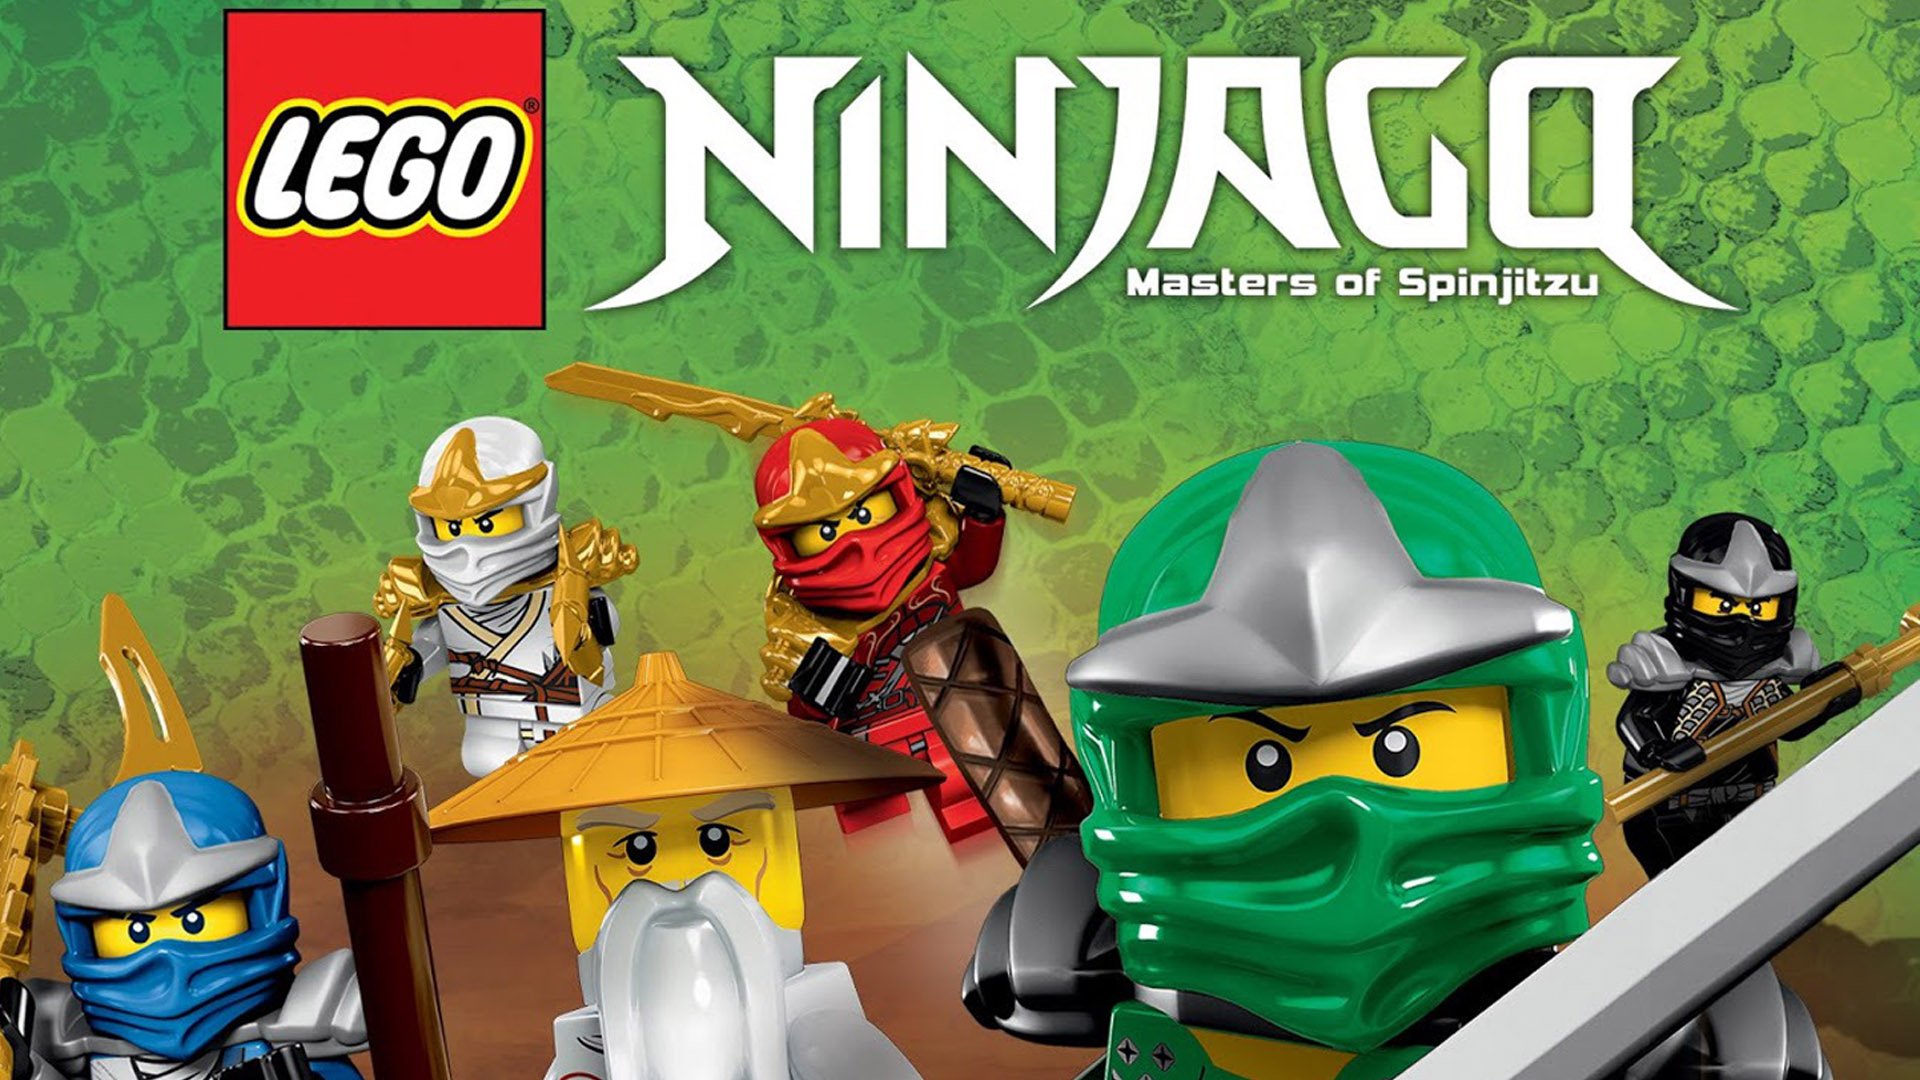 LEGO Ninjago: Masters of Spinjitzu: The Complete First Season